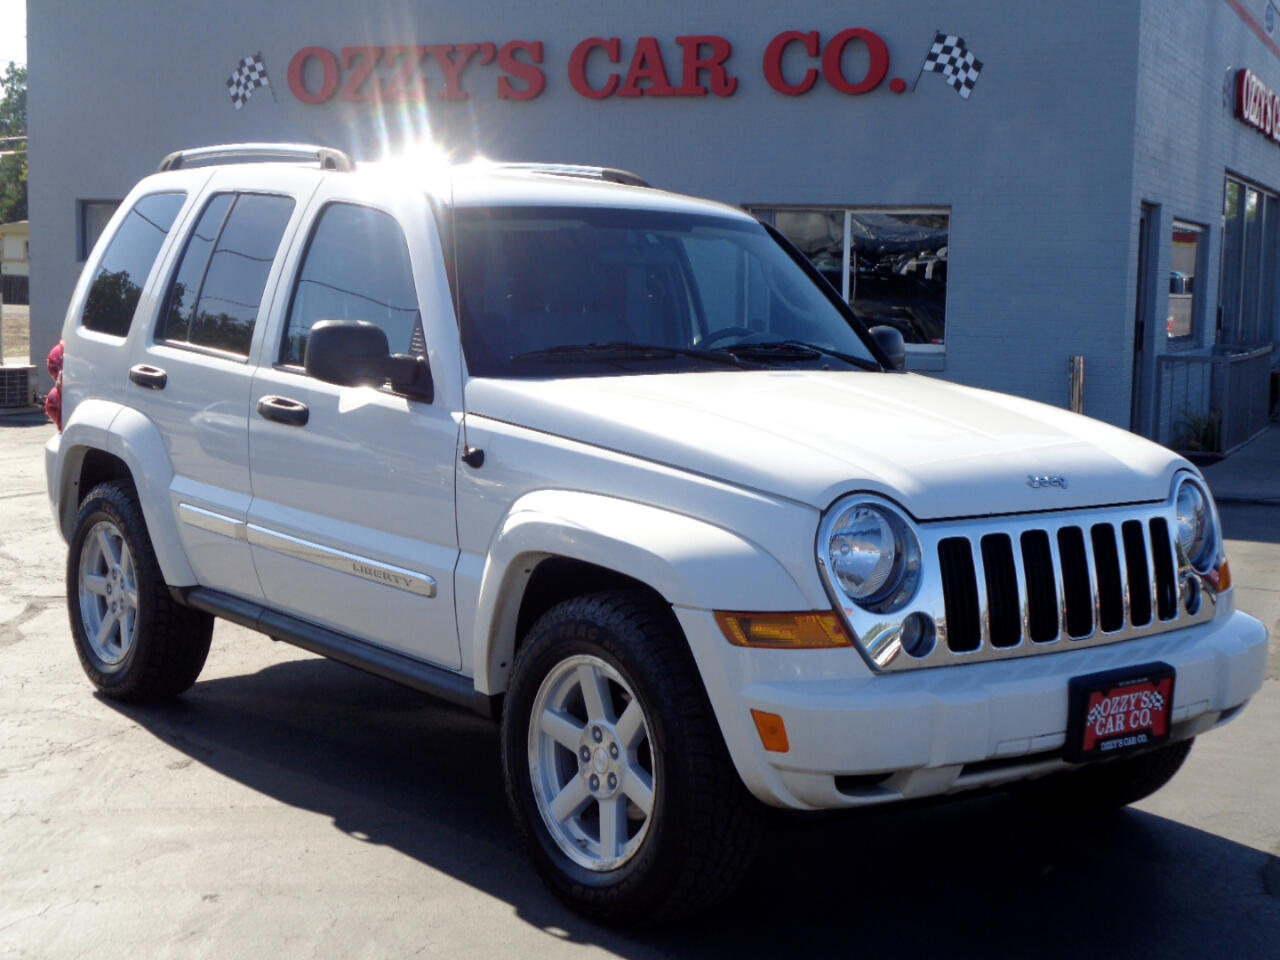 2007 Jeep Liberty 2WD 4dr Limited